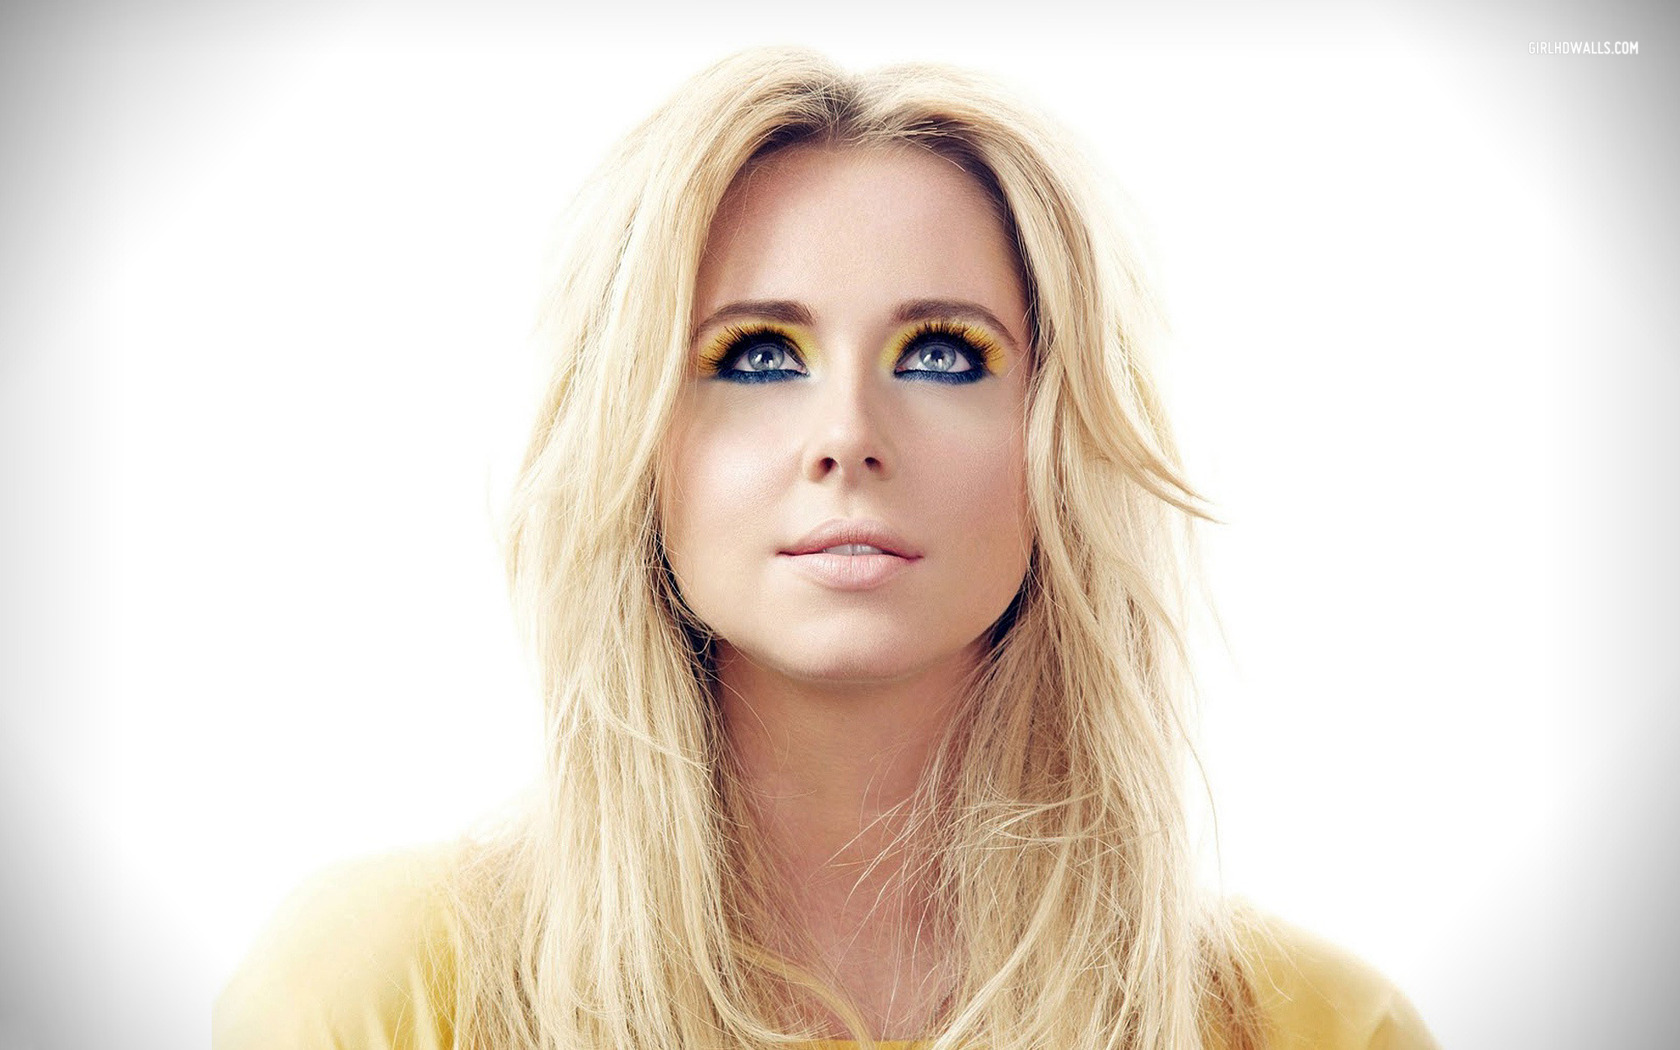 Pop Singer and X-Factor runner-up Diana Vickers is set to premiere her new show Give Out Girls on Comedy Central. The show follows four friends who work in ...